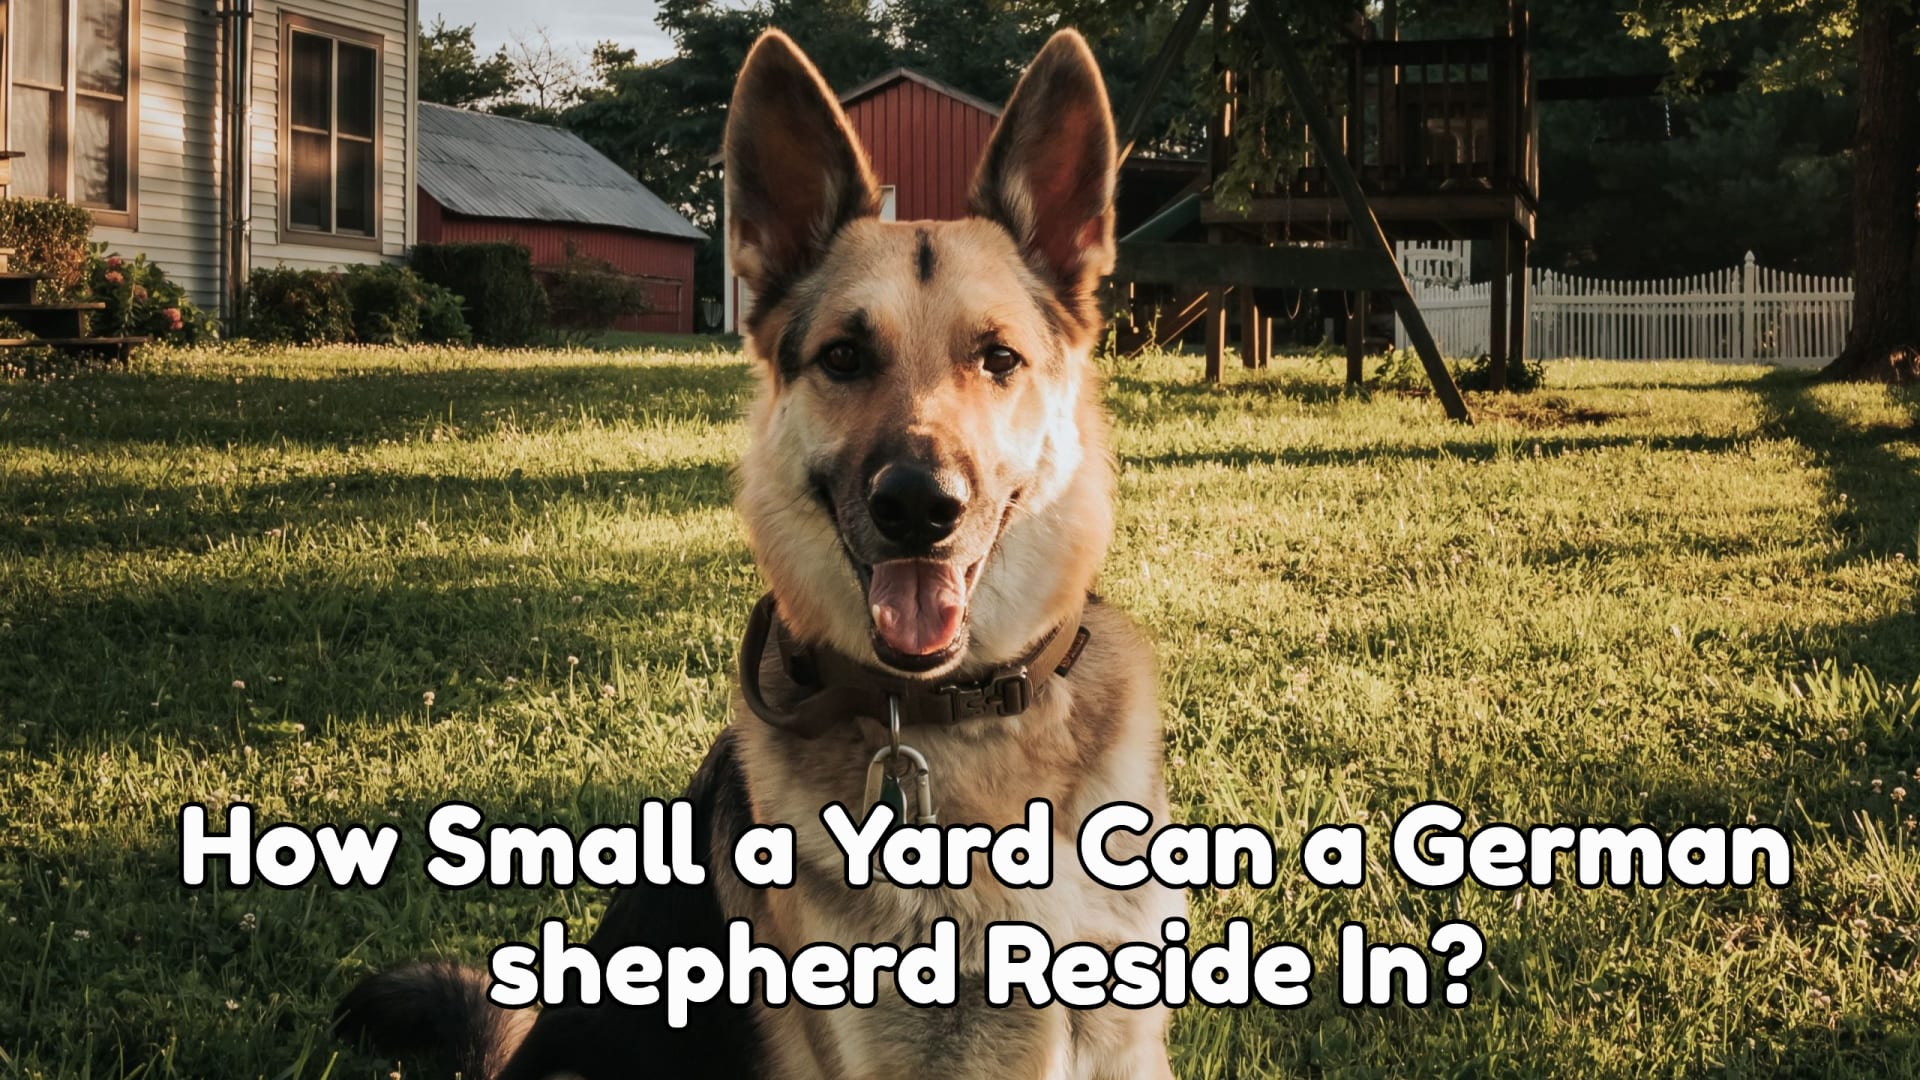 How Small a Yard Can a German shepherd Reside In?